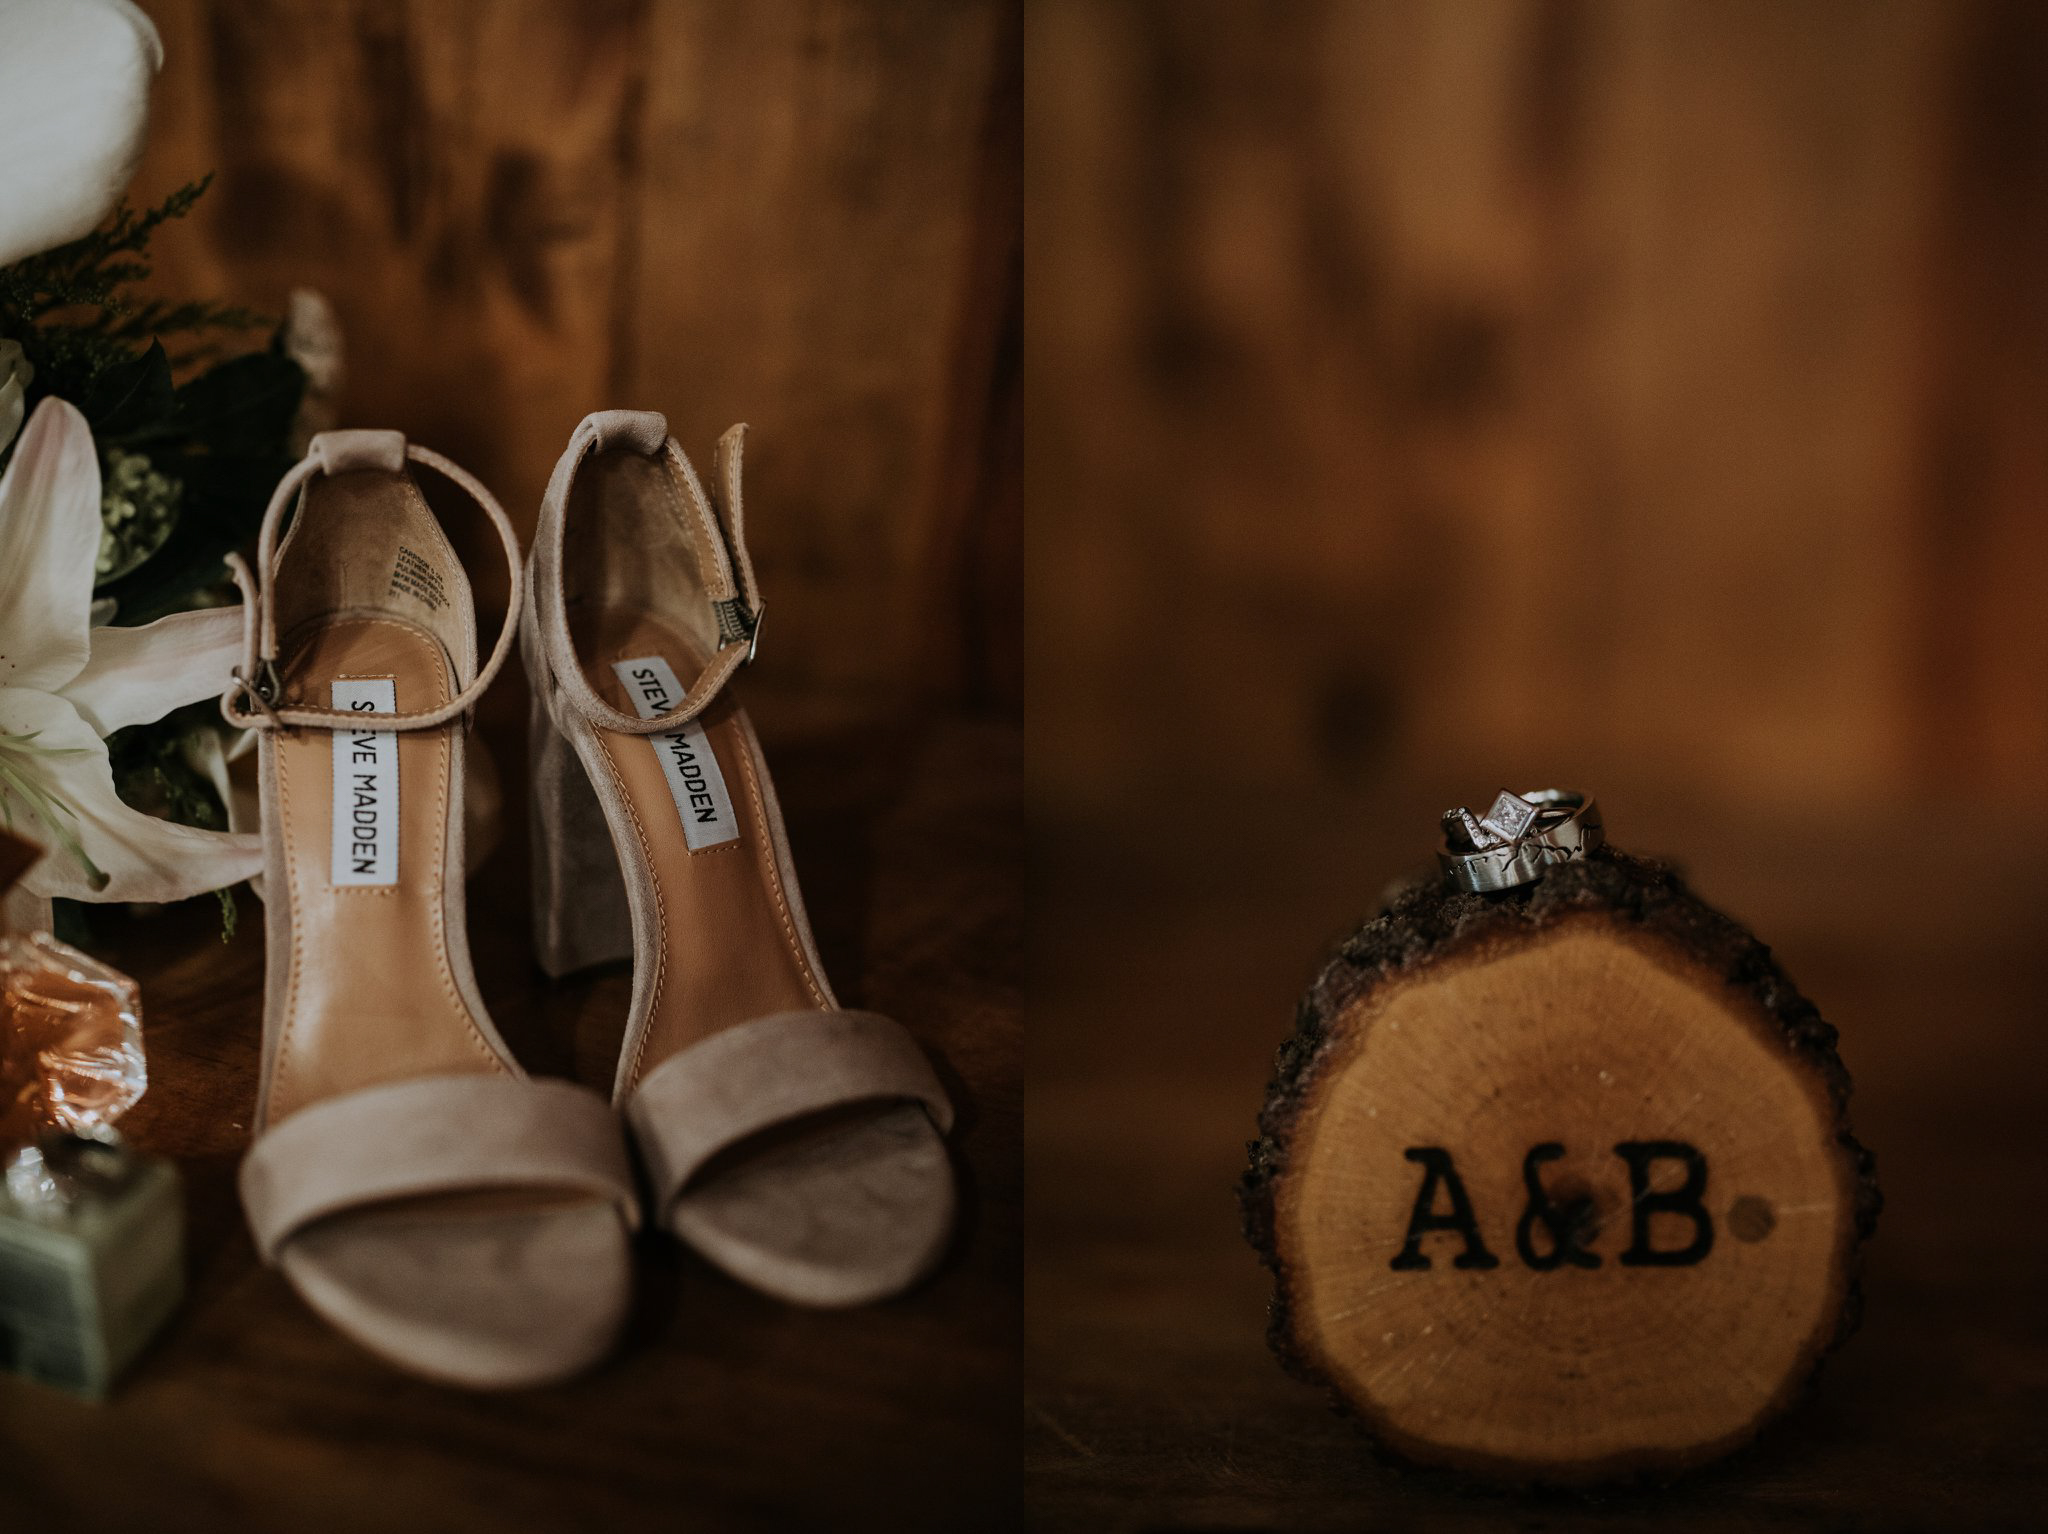 trinity-tree-farm-issaquah-washington-wedding-seattle-lifestyle-photographer-caitlyn-nikula-photography-6.jpg